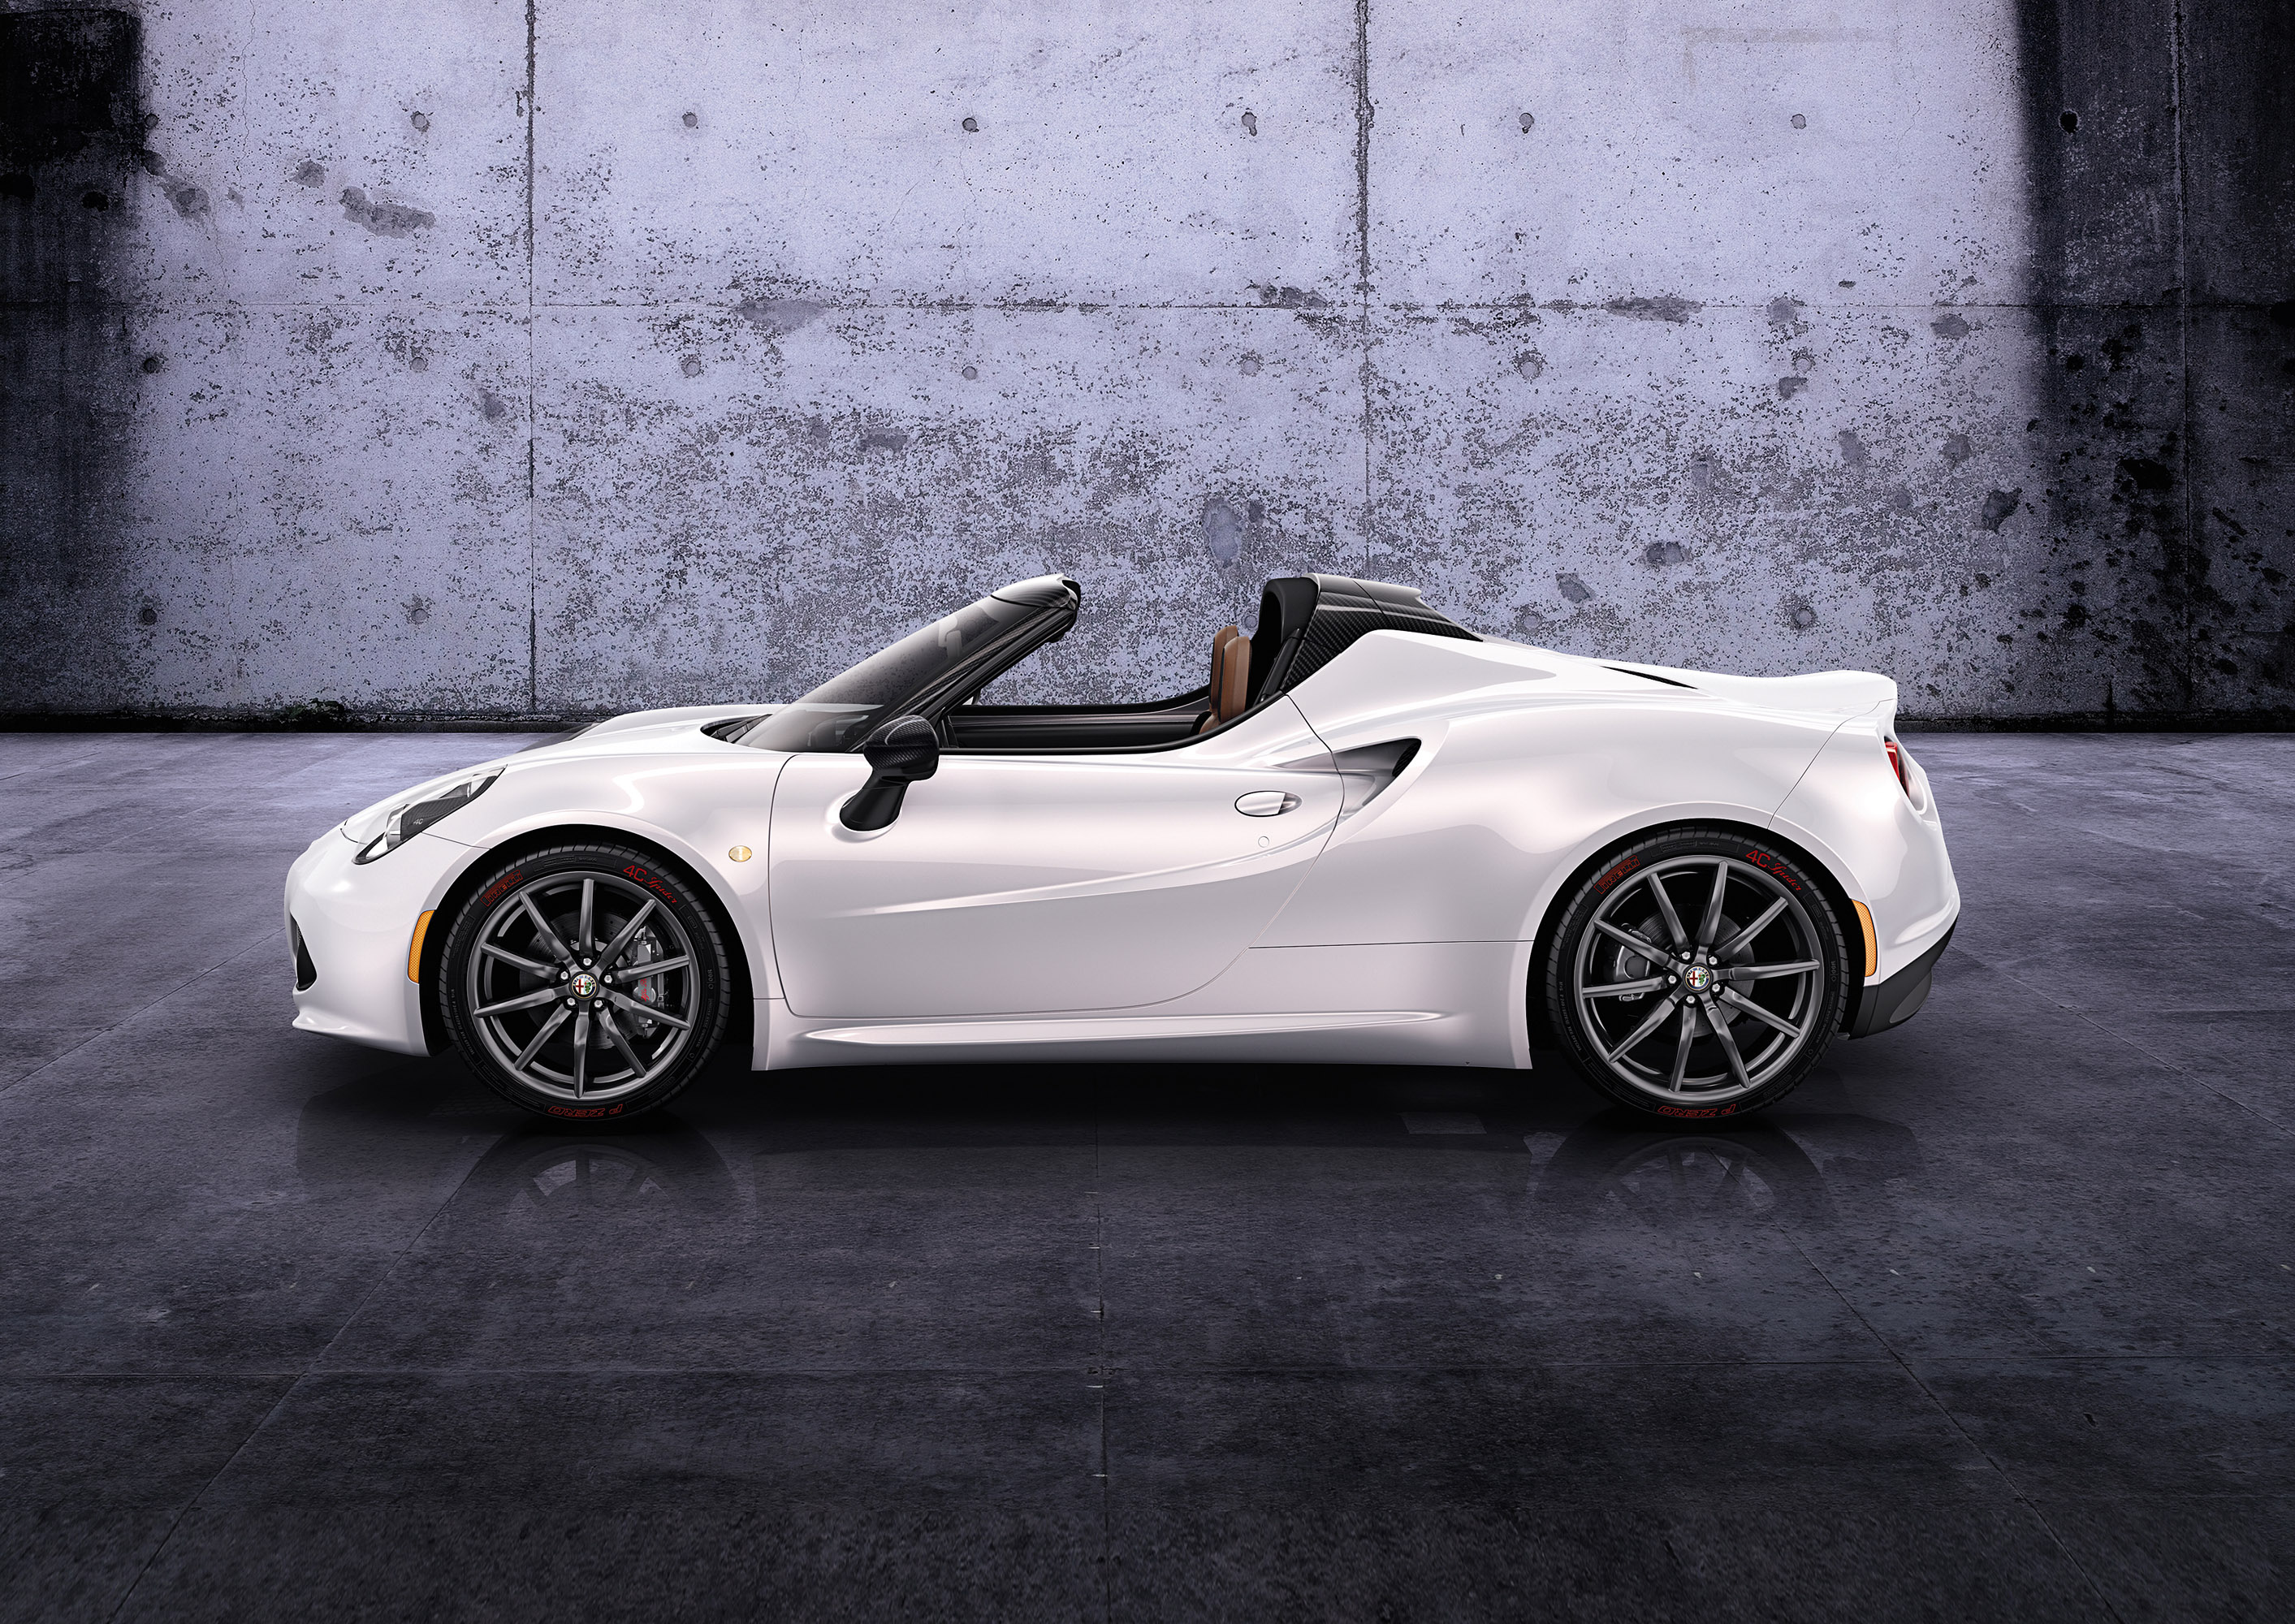 debut for alfa romeo 4c spider prototype. Black Bedroom Furniture Sets. Home Design Ideas